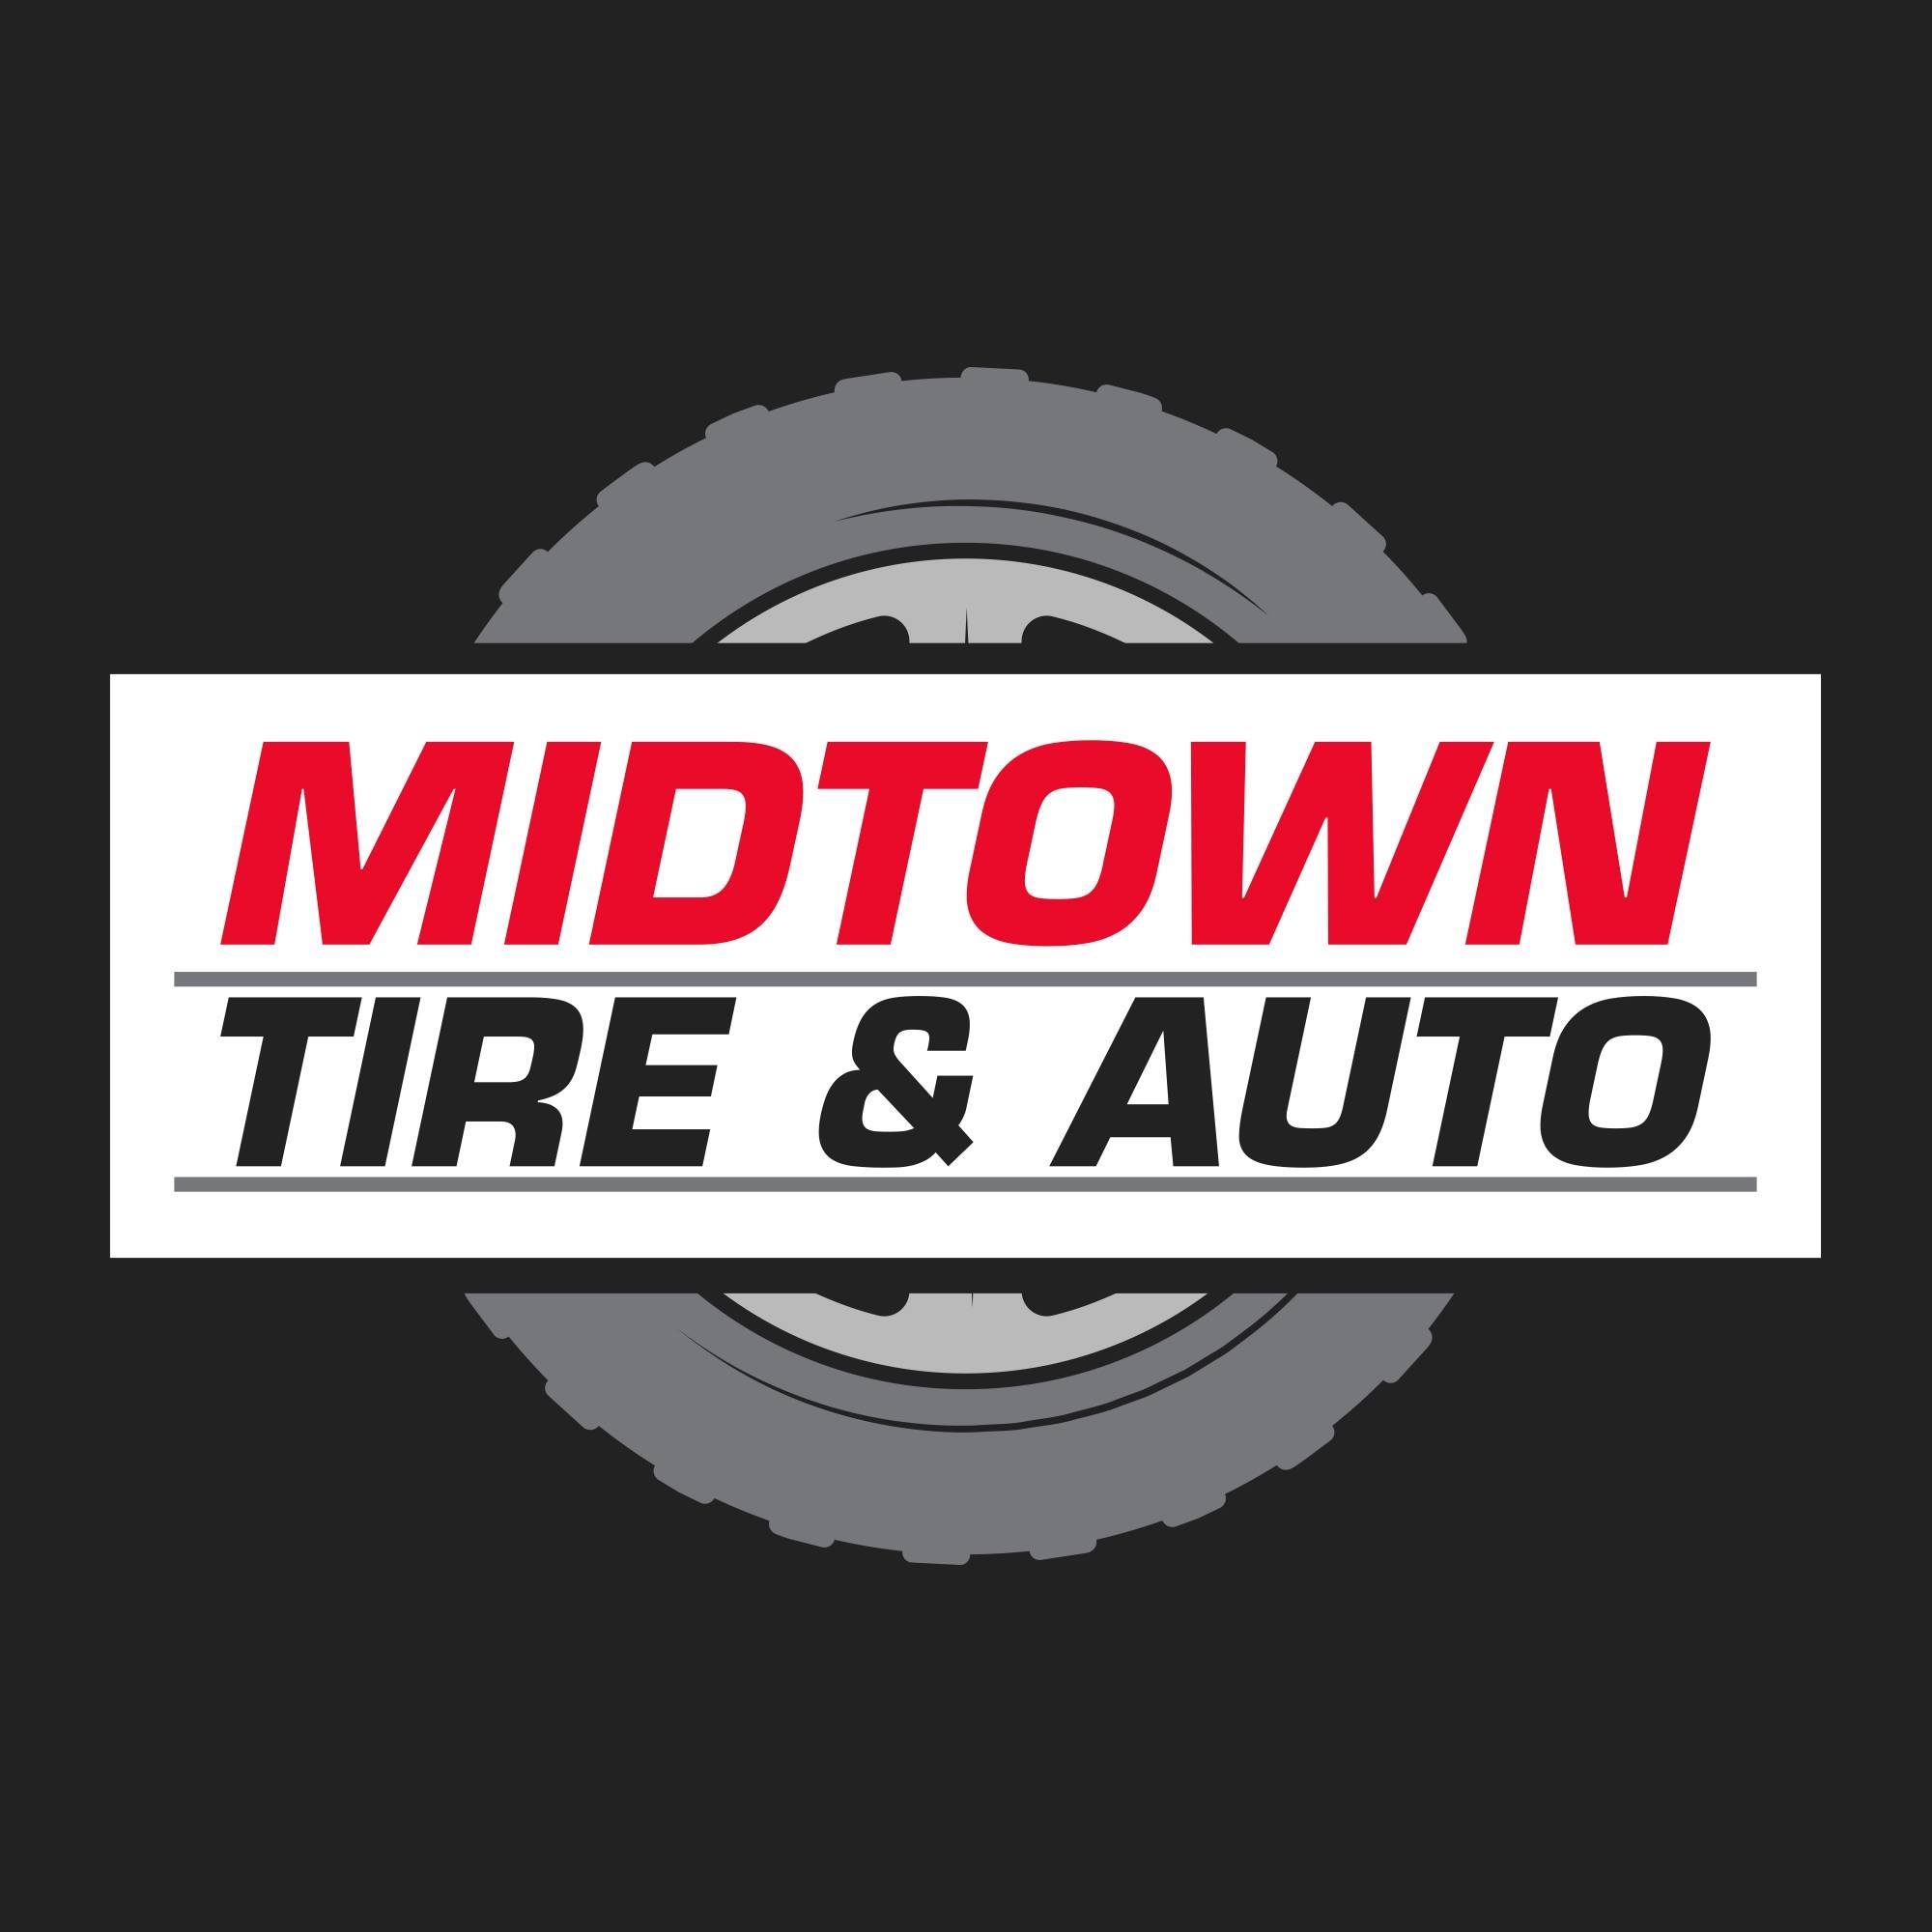 Midtown Tire & Auto